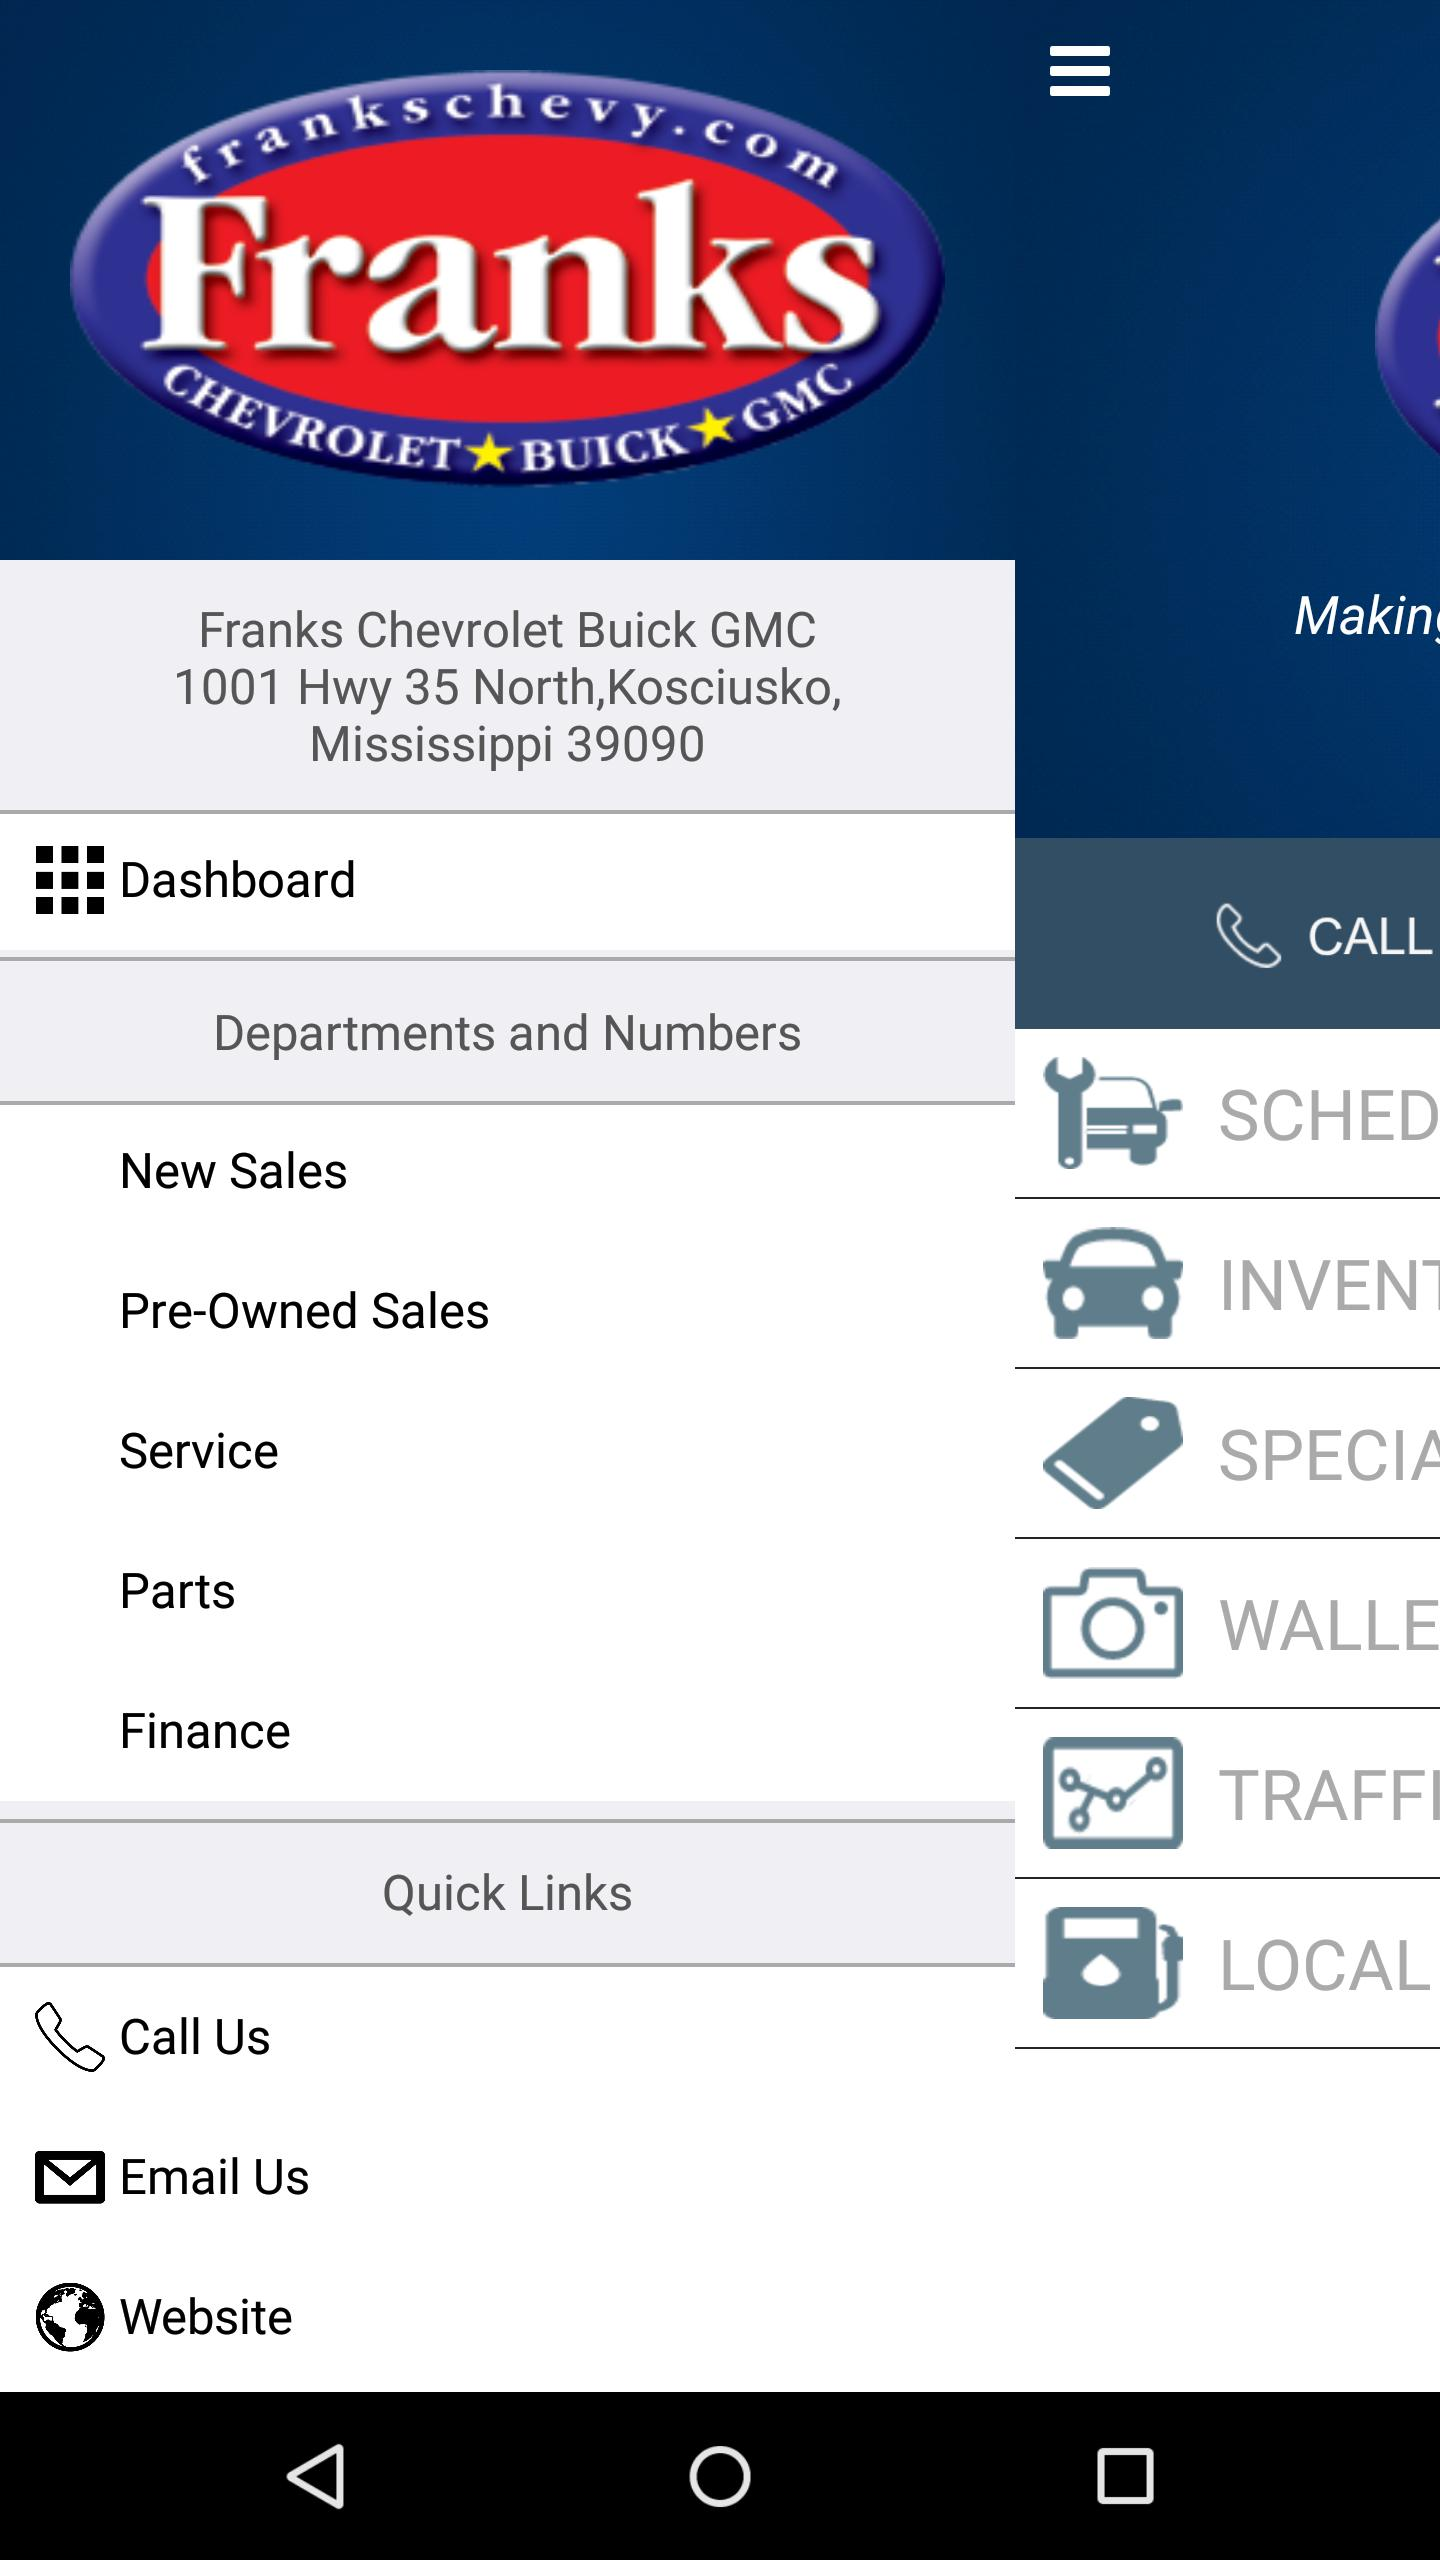 Franks Chevrolet Buick Gmc For Android Apk Download